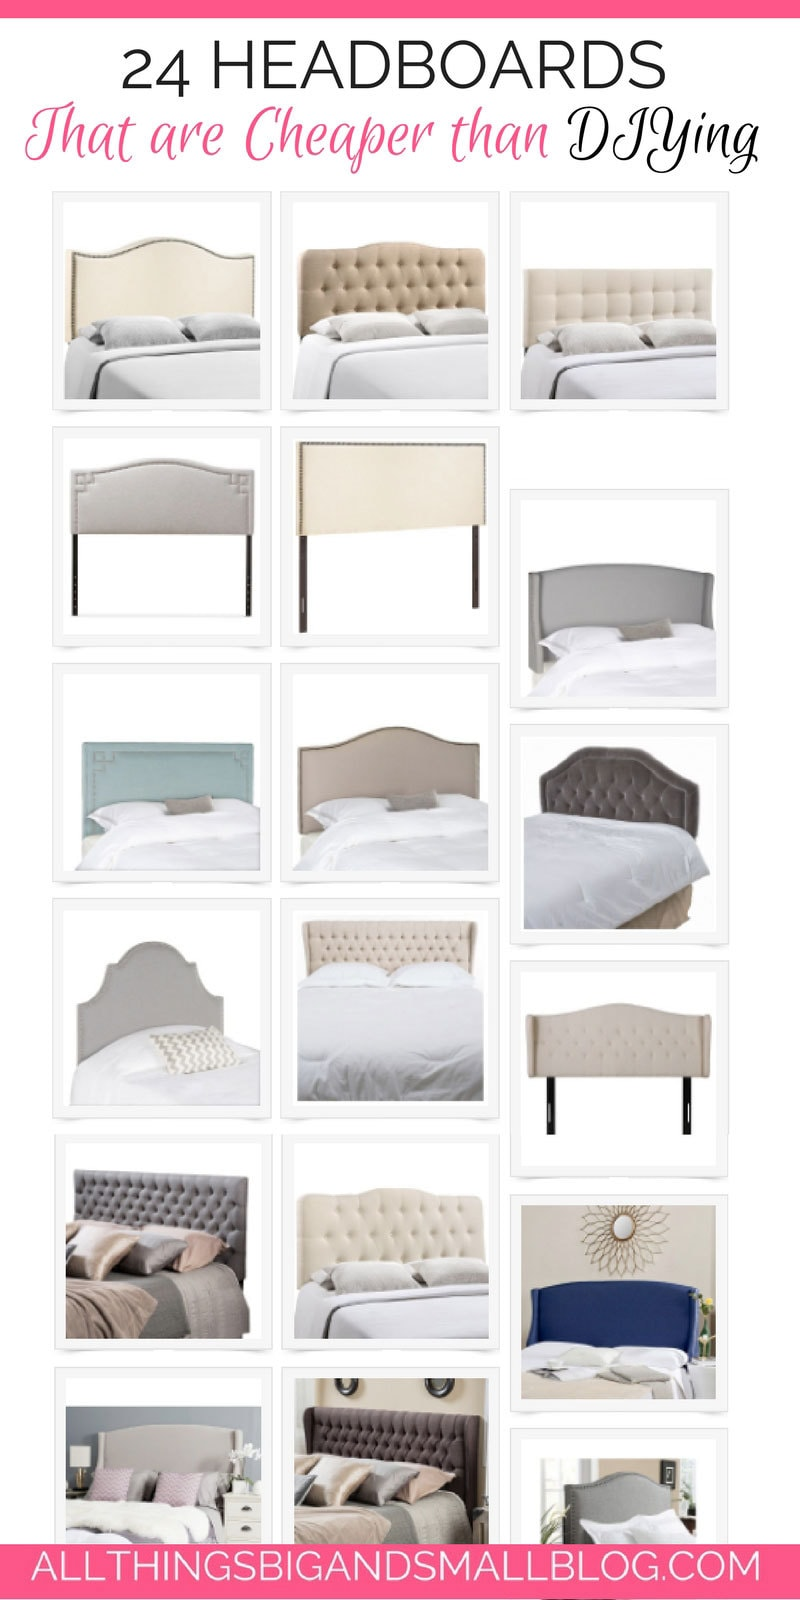 affordable headboards | best headboards to buy